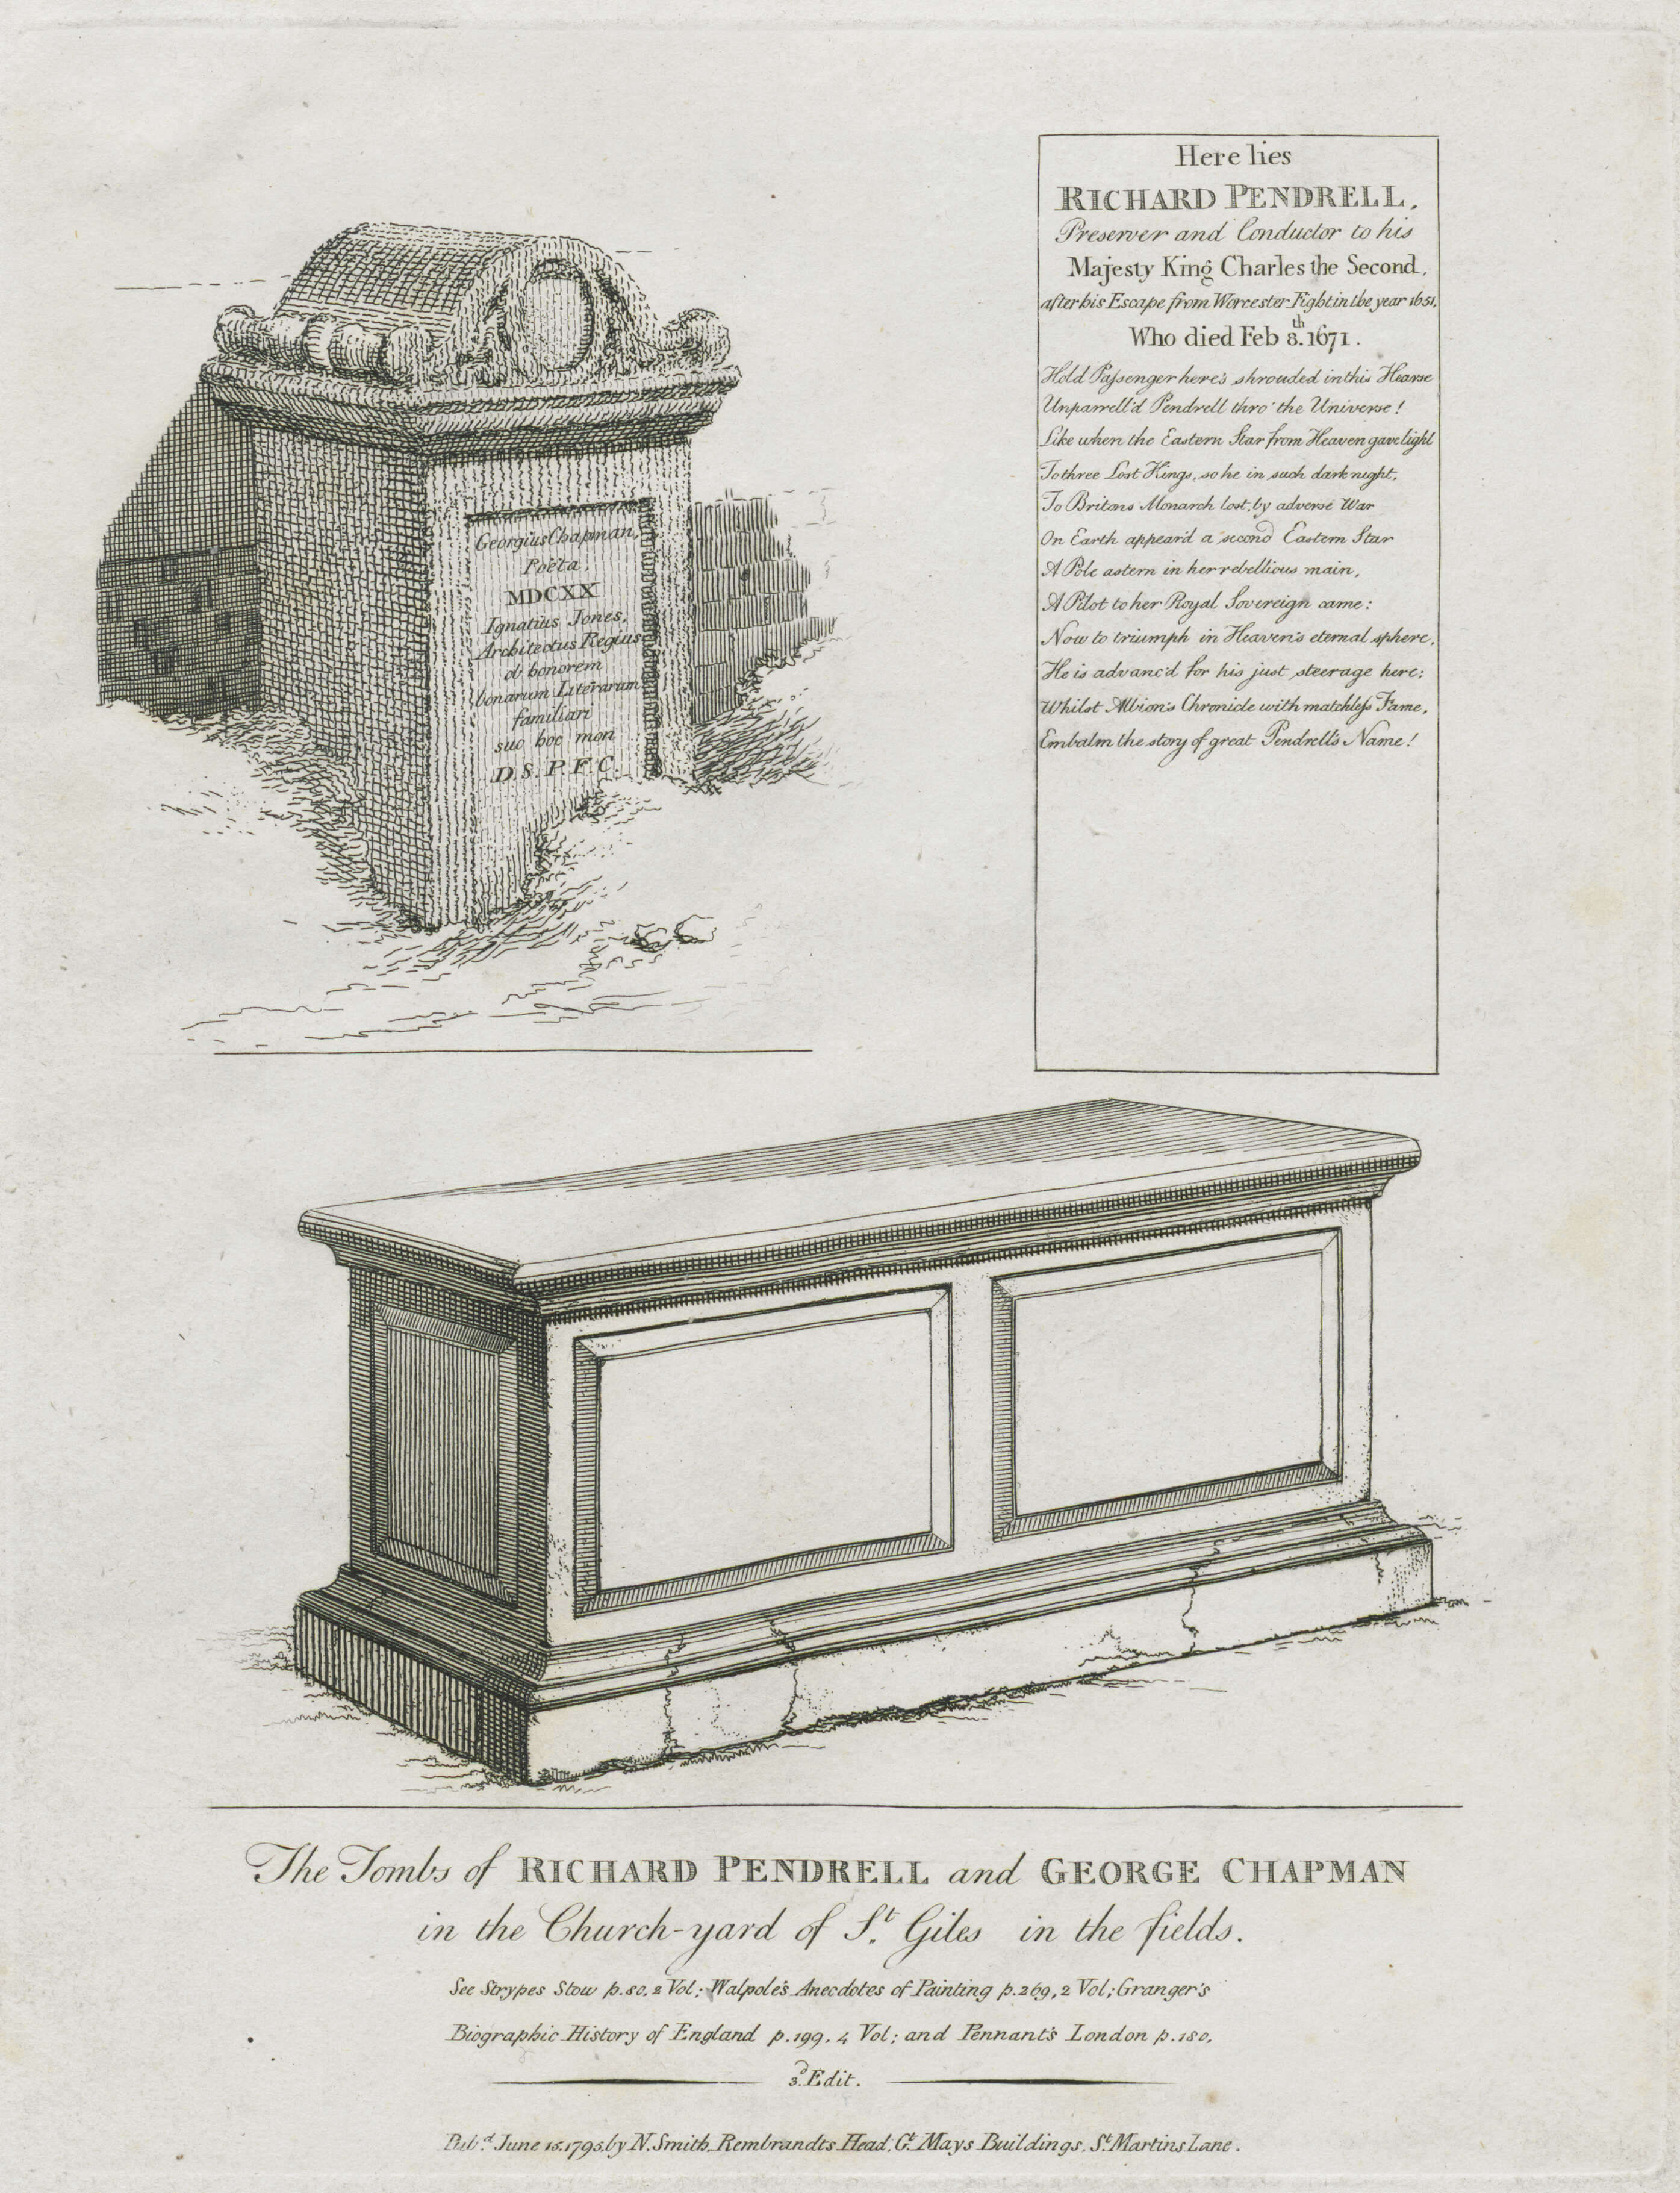 64-the-tombs-of-richard-pendrell-and-george-chapman-in-the-church-yard-of-st-giles-in-the-fields